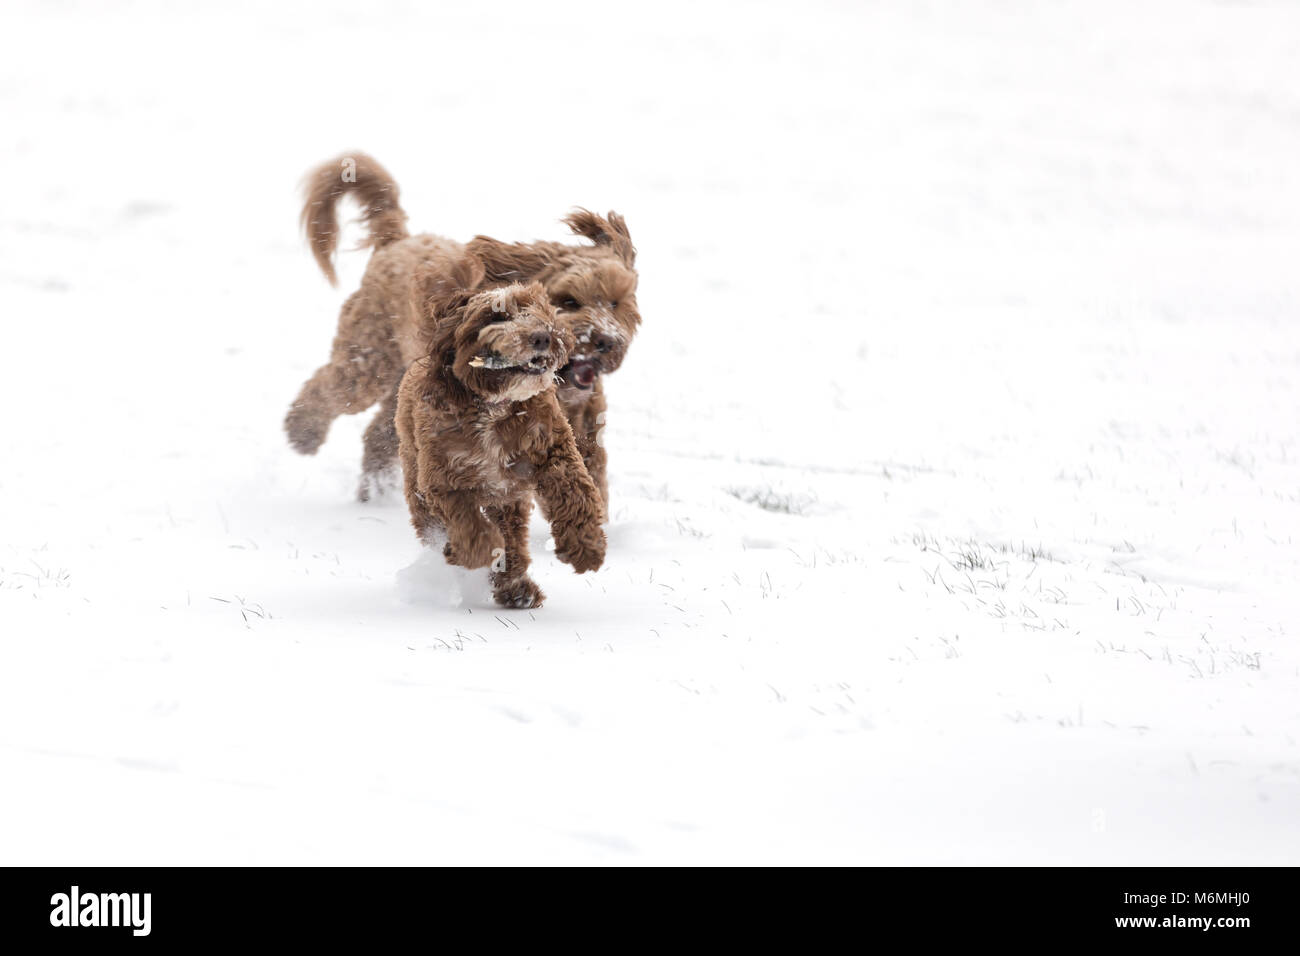 Two chocolate cockerpoos playing chase with a stick in the snow. Space for your text. - Stock Image